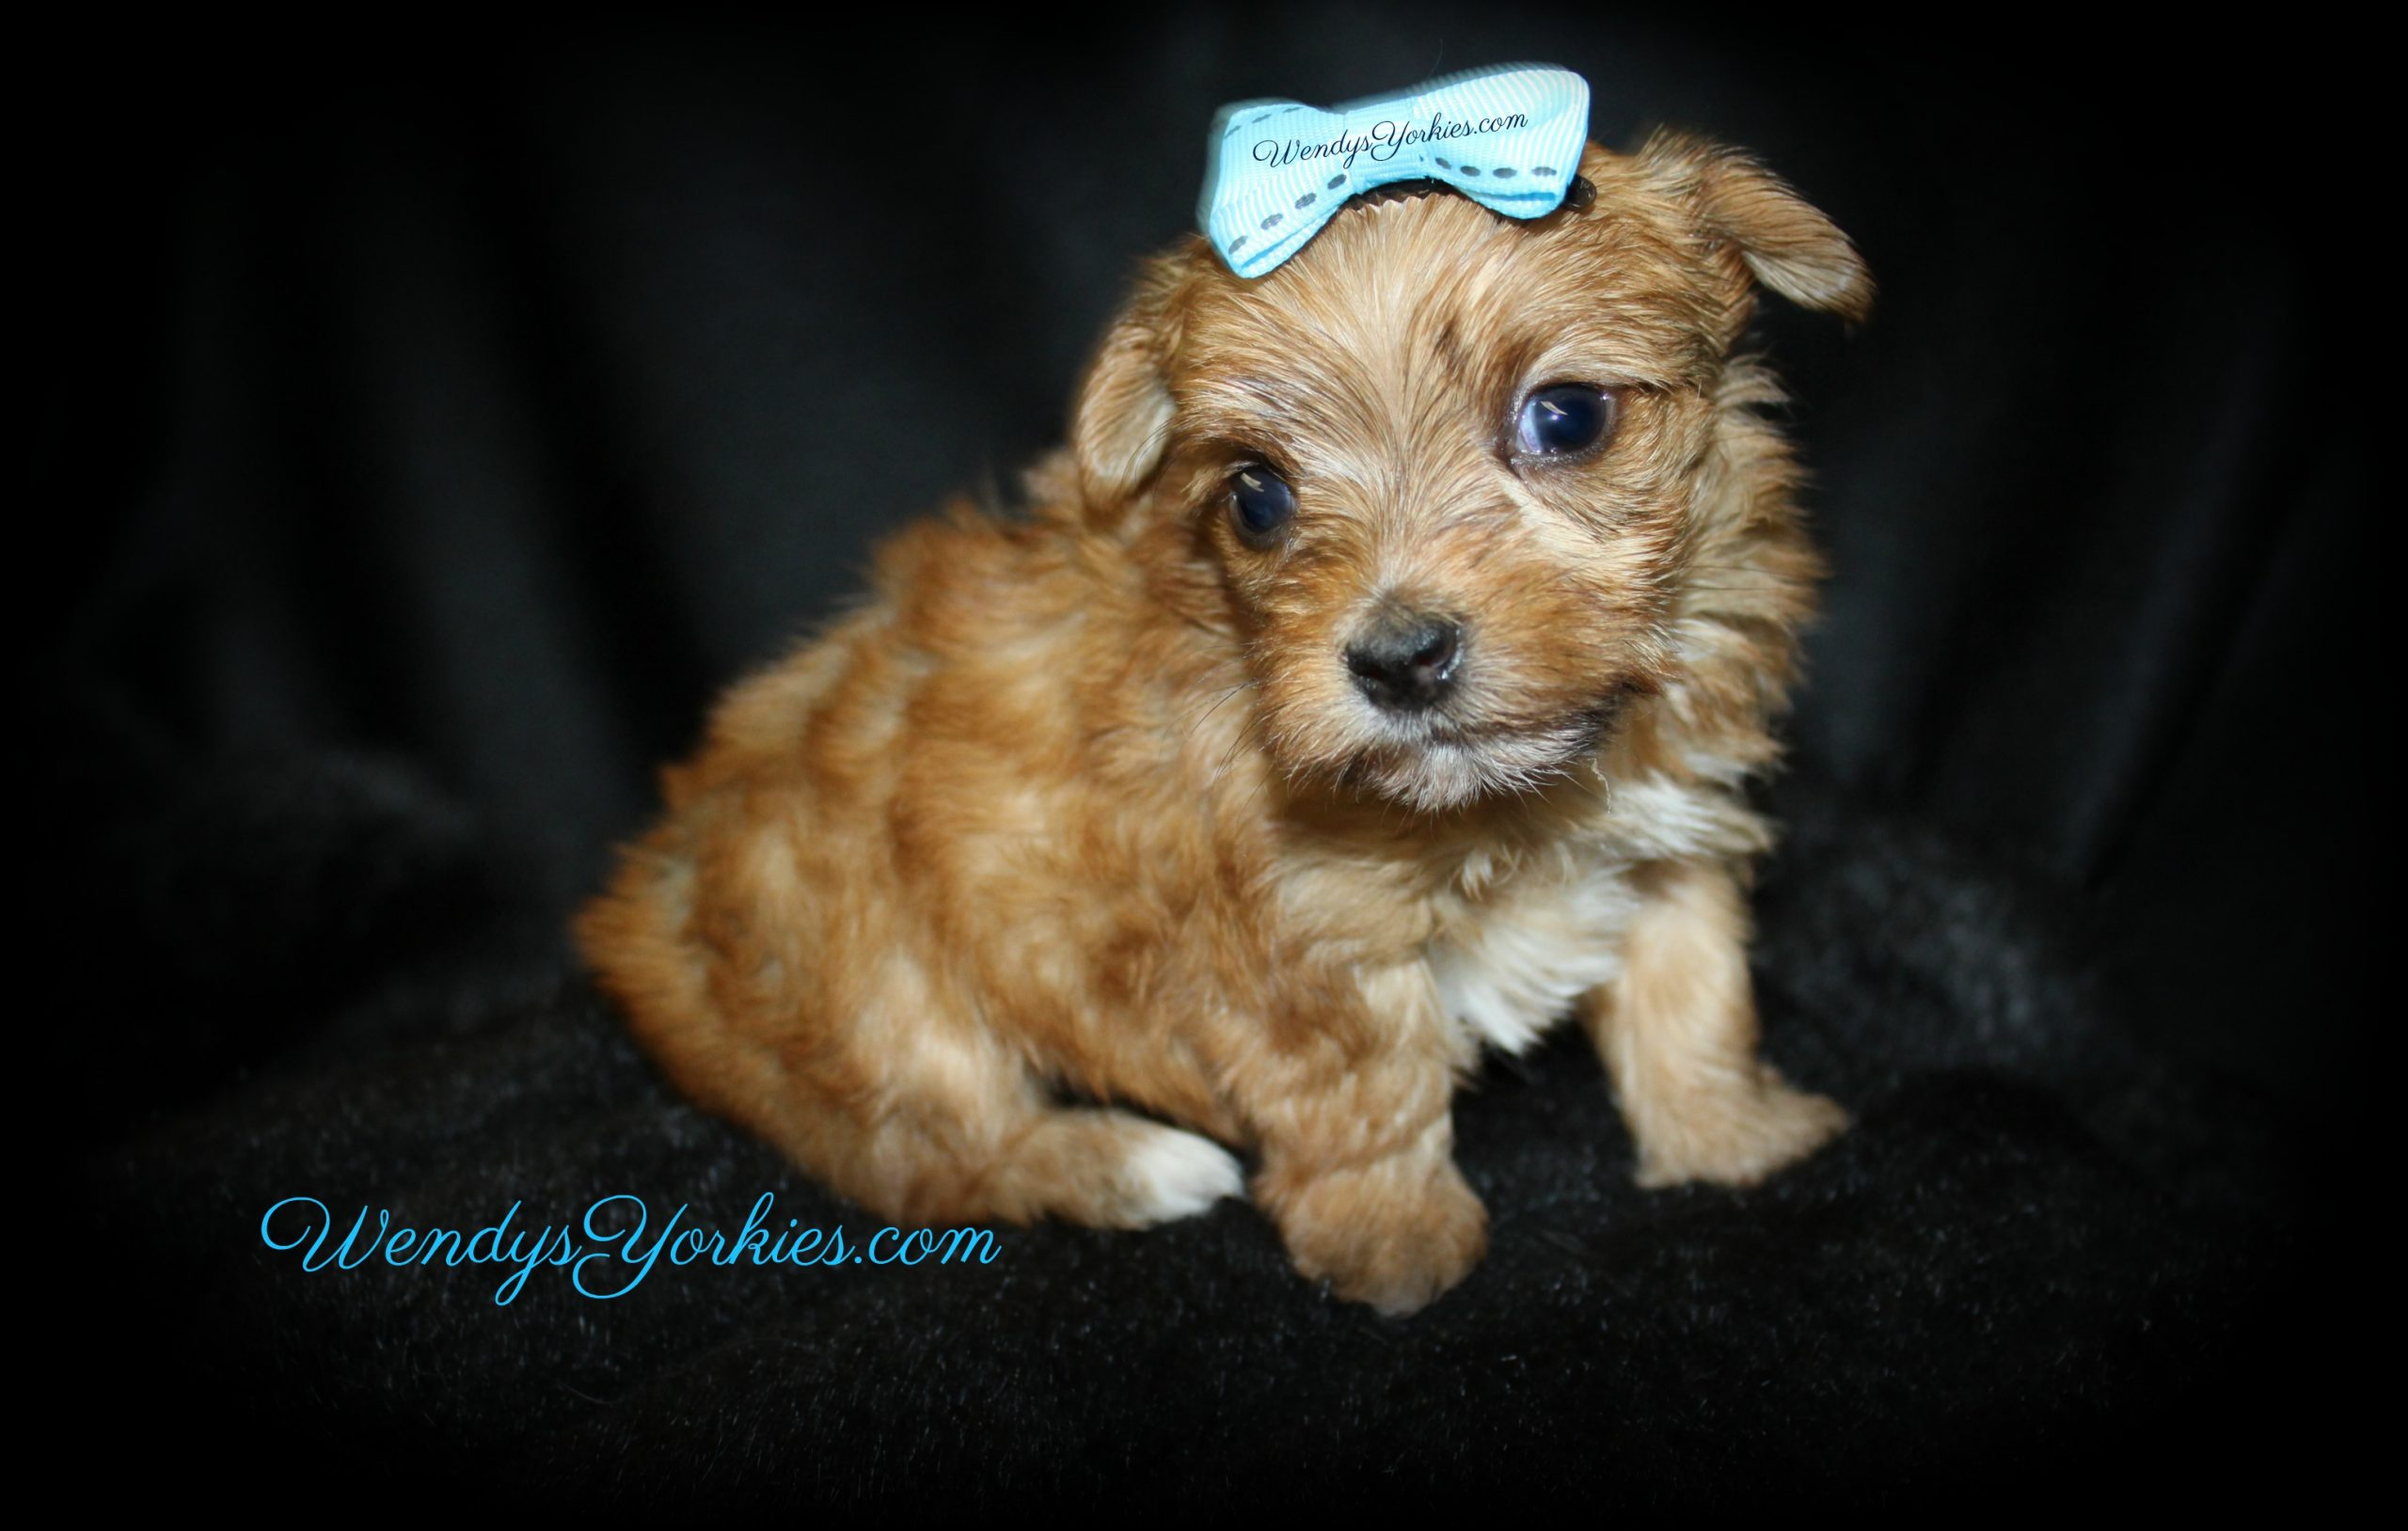 Teacup Gold Yorkie puppy for sale in Texas, Lela m1, WendysYorkies.com